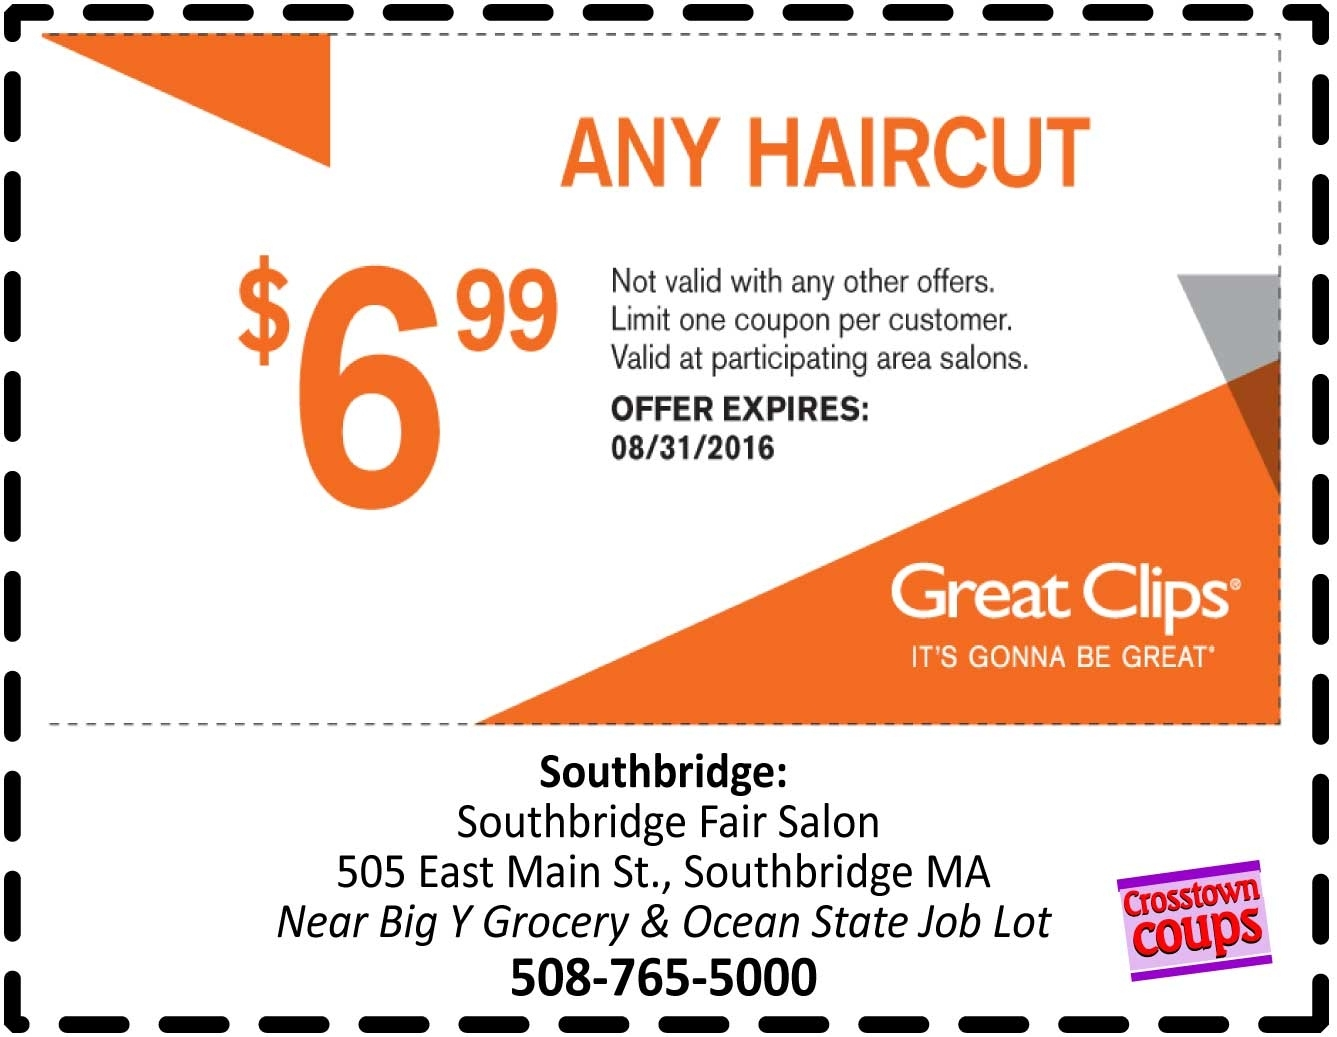 haircut coupons near me haircut coupons 2018 me wavy haircut 1723 | great clips printable coupons sep 2018 eating out deals in glasgow within haircut coupons 2018 near me